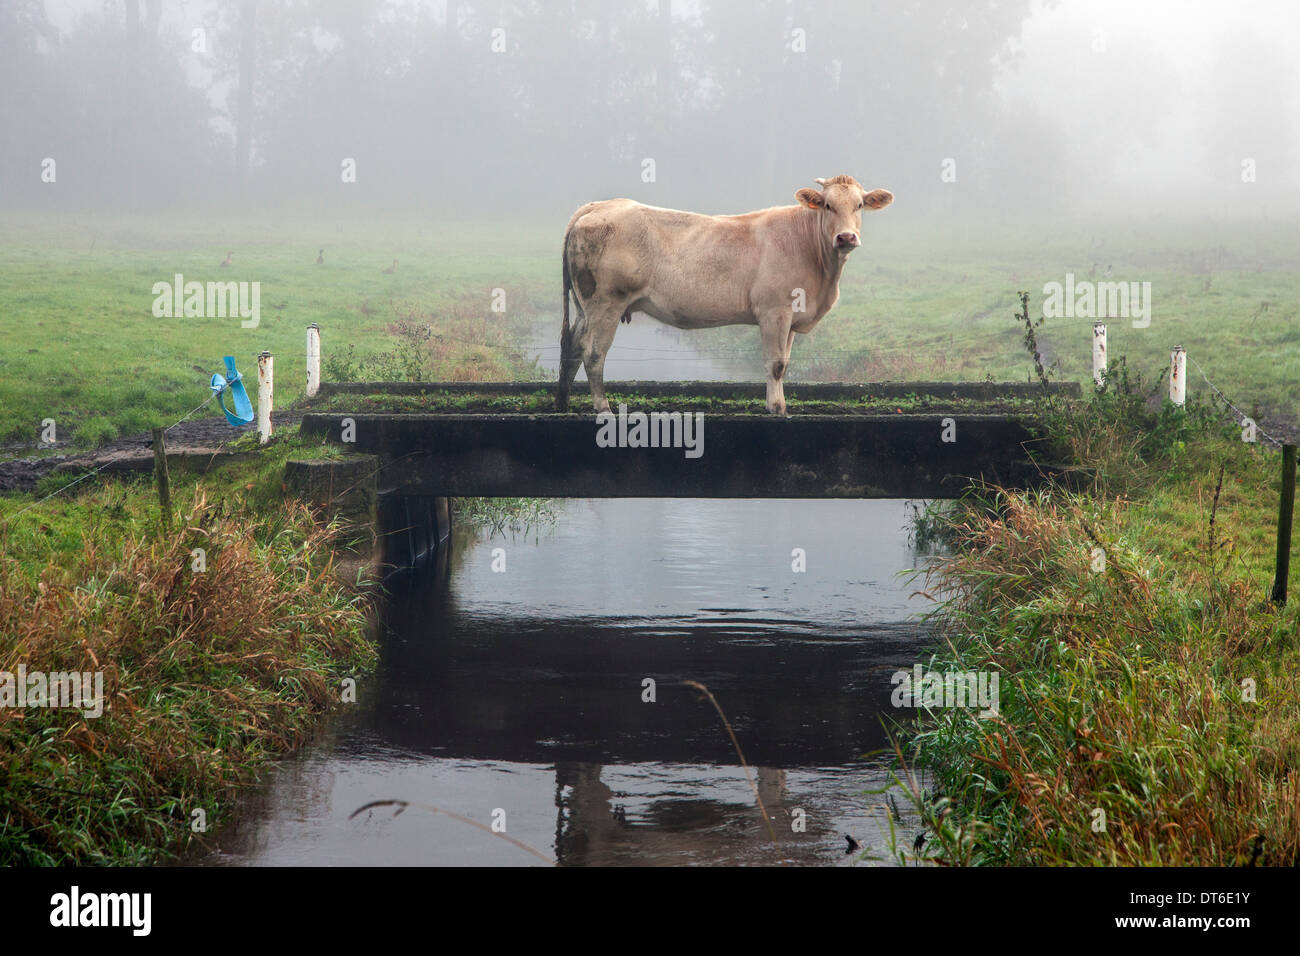 Curious cow on bridge over trench on farmland in polder - Stock Image